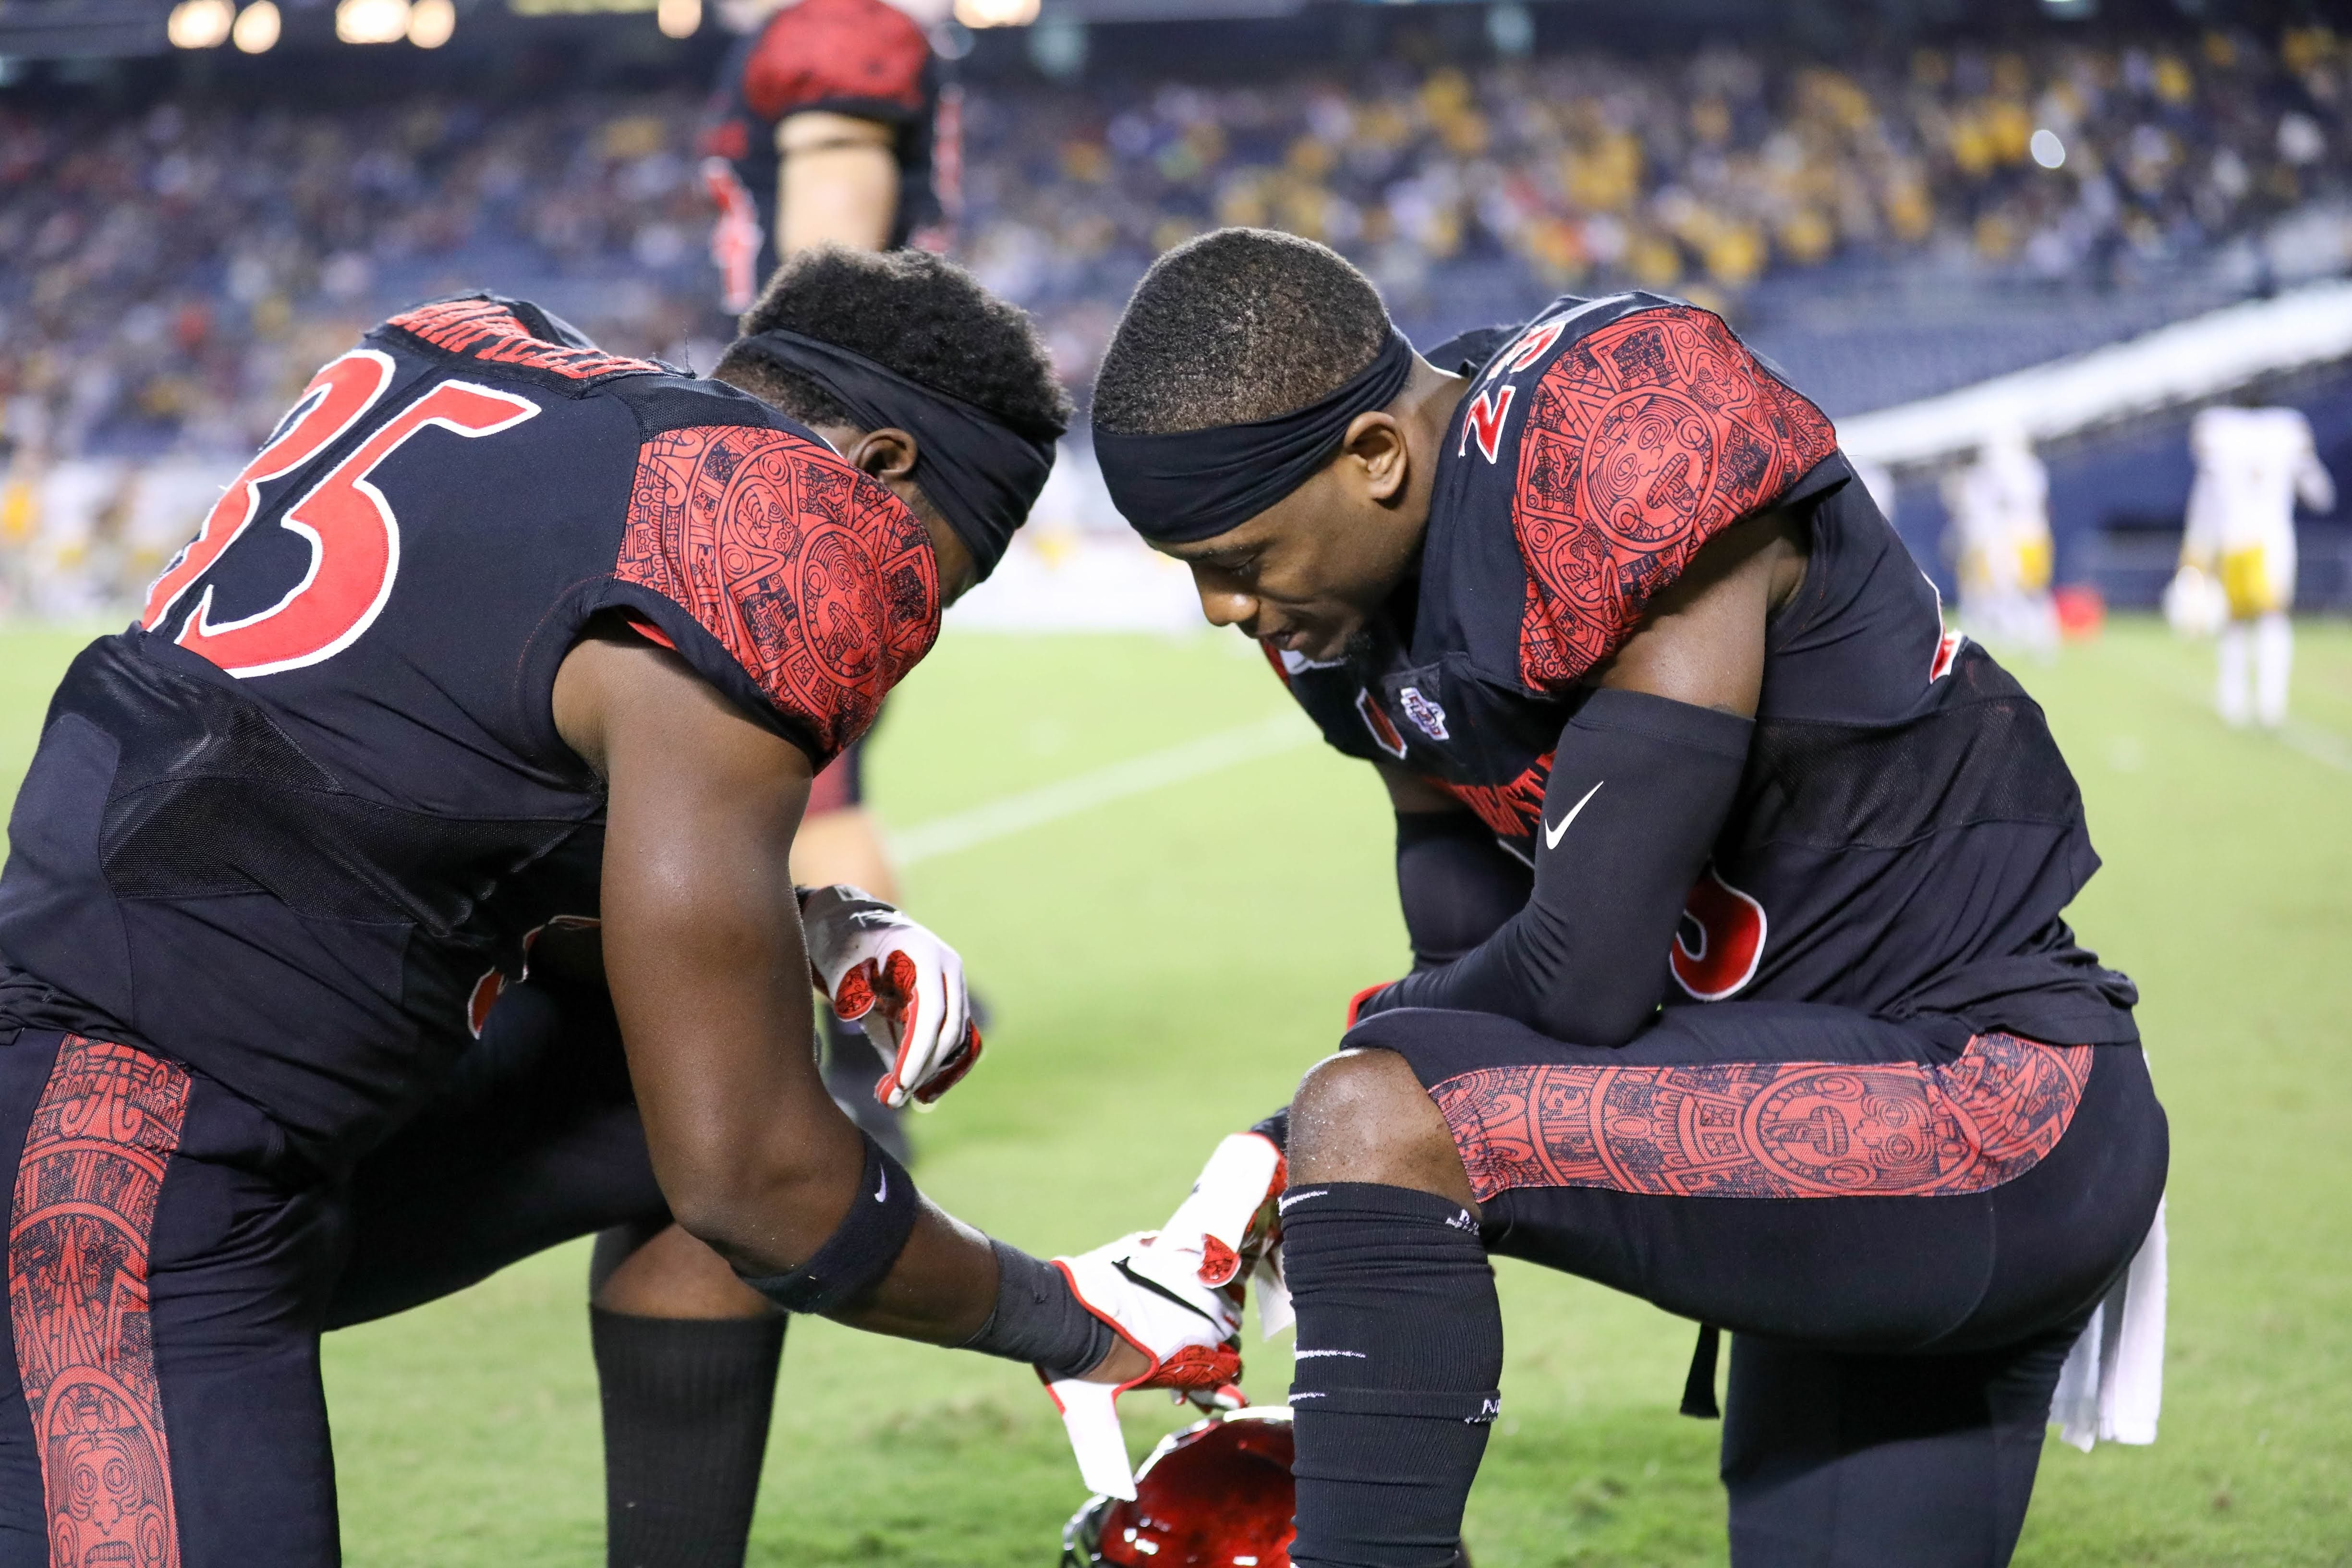 Darren Hall and a teammate kneeling on the field